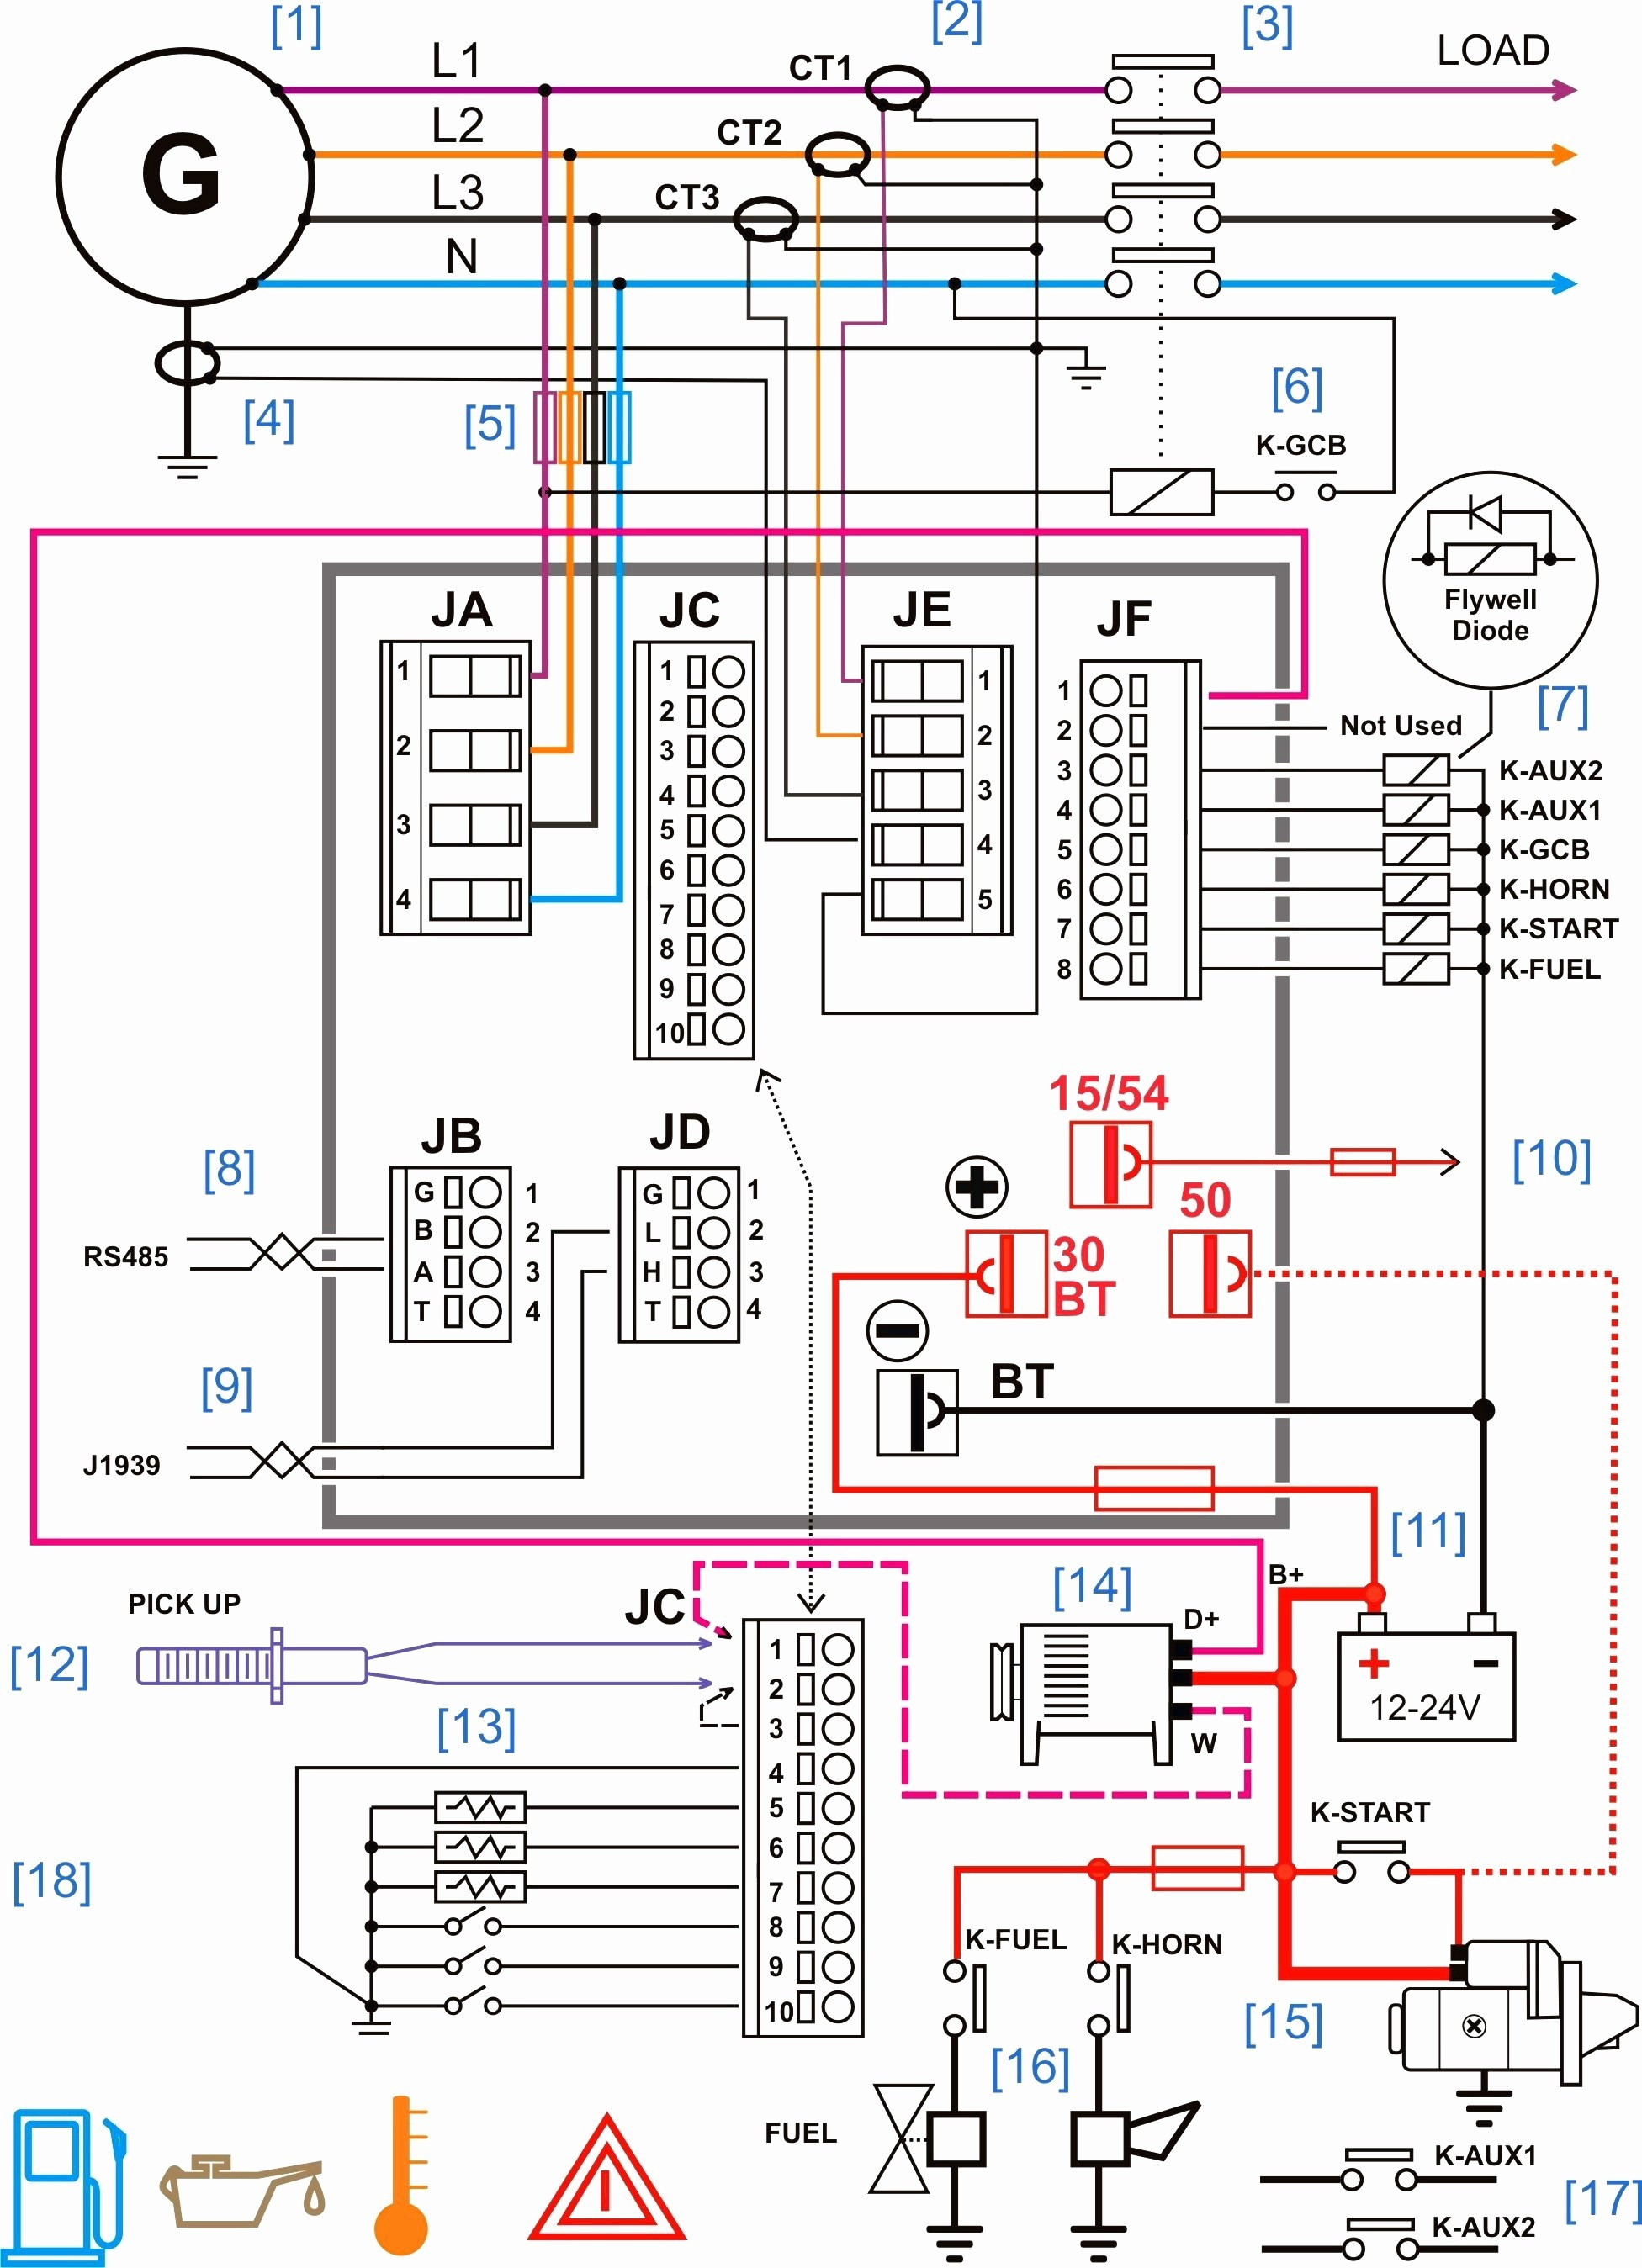 automotive wiring diagram color codes Download-Automotive Wiring Diagram line 2017 Automotive Wiring Diagram Line Save Best Wiring Diagram Od Rv Park 1-q